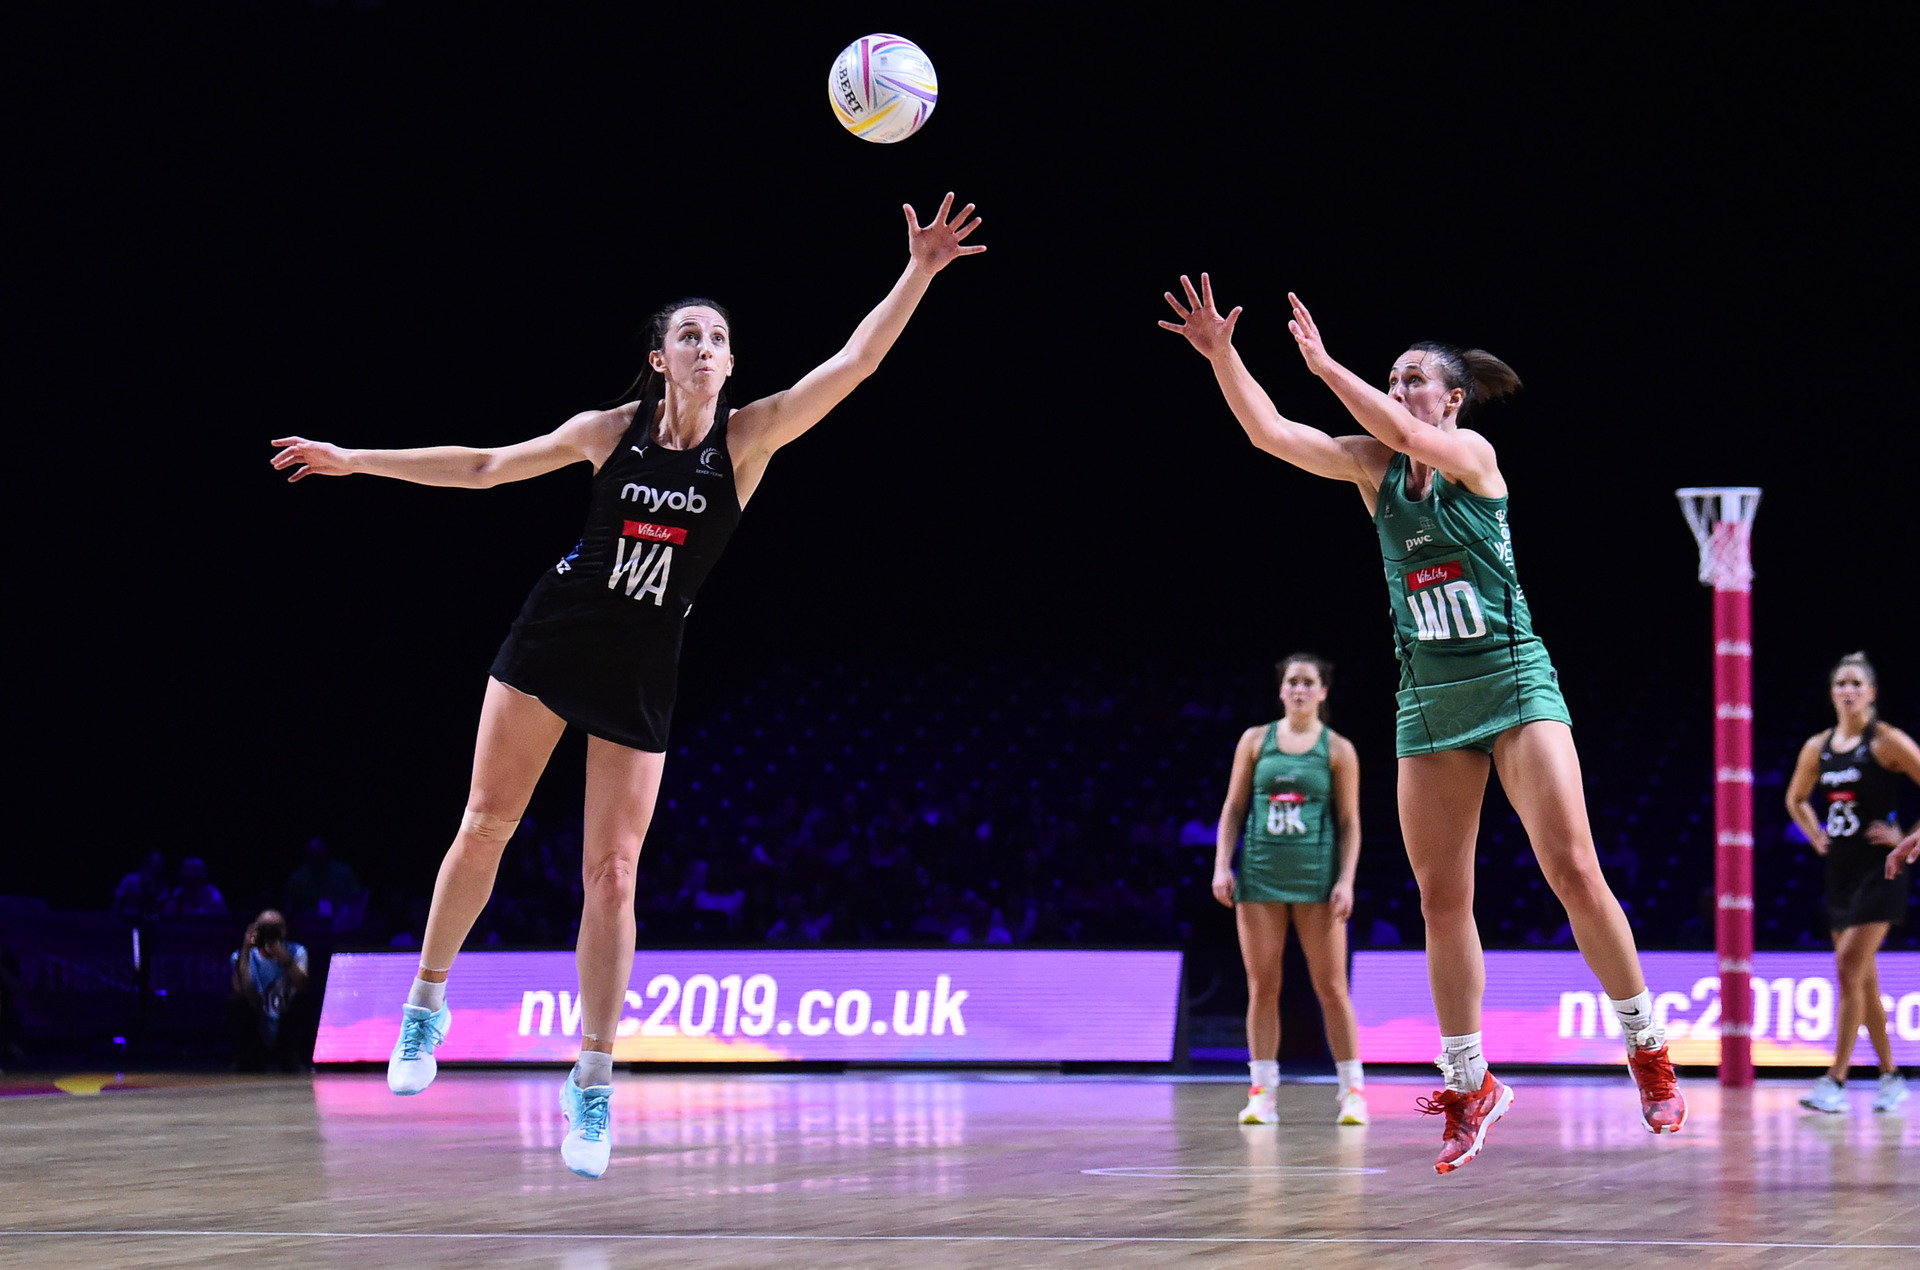 Netball: Silver Ferns secure World Cup semifinal one match early with victory over Northern Ireland